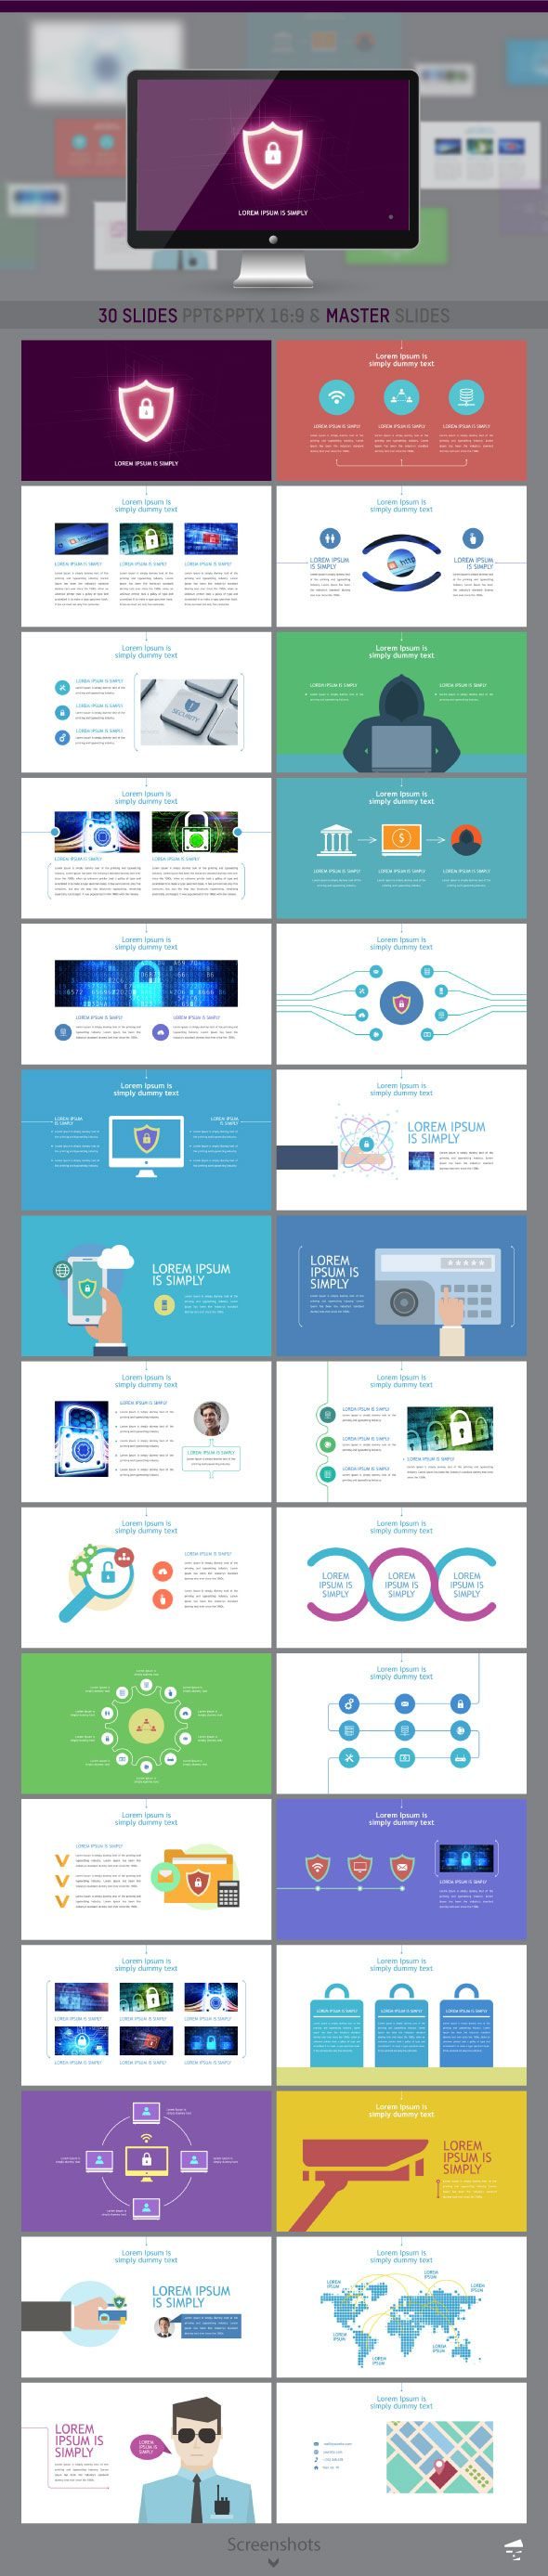 Security presentation | PowerPoint Templates | Business powerpoint